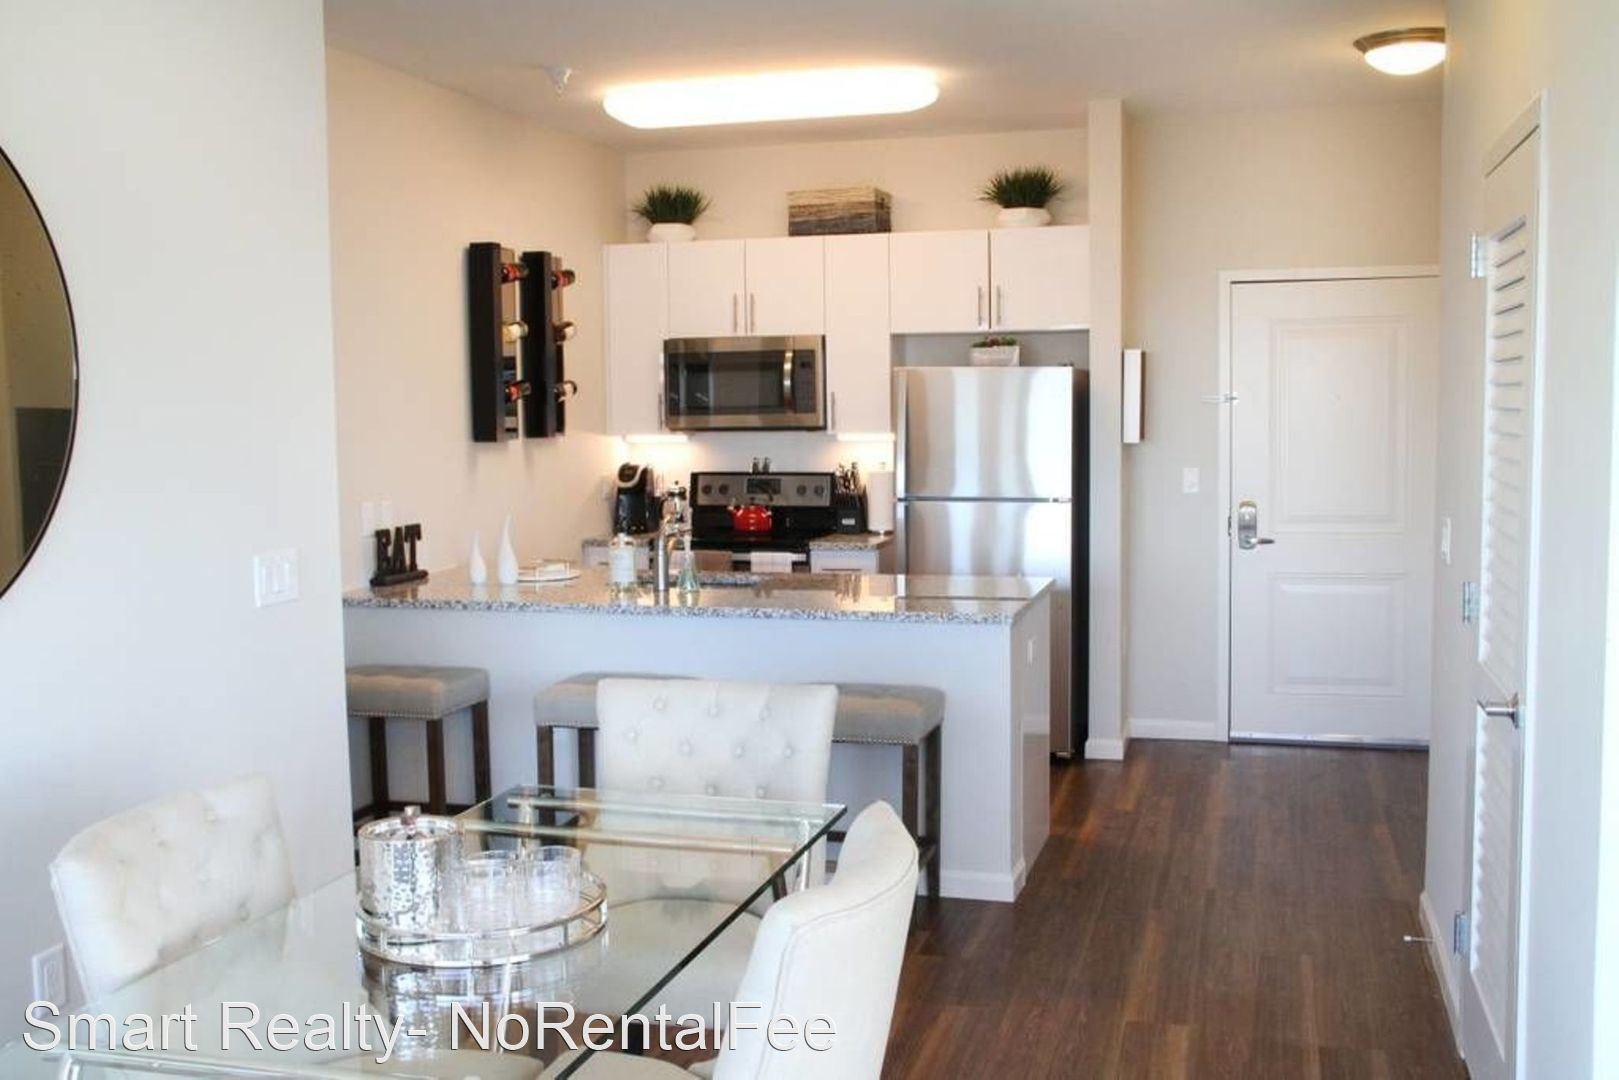 jersey city nj apartments for rent by owner